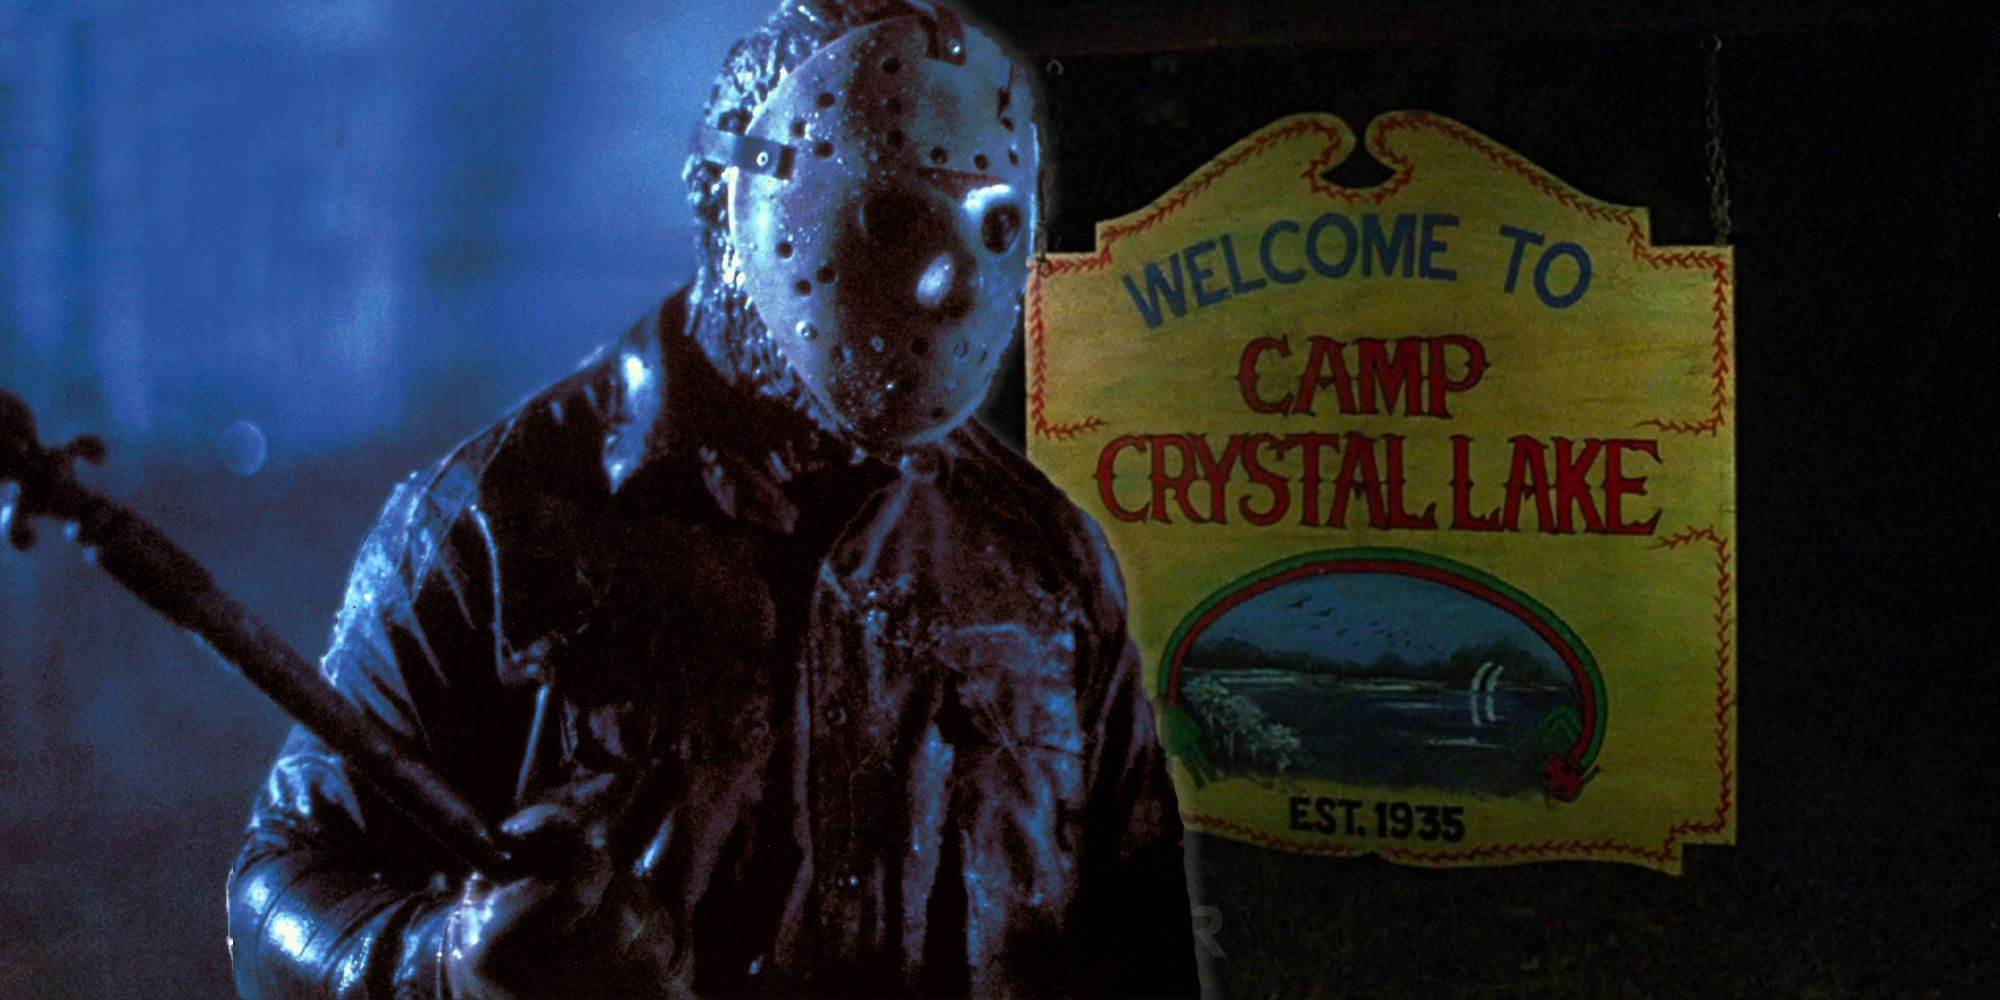 Friday The 13th Fans Can Watch Jason Lives at Camp Crystal Lake This Summer